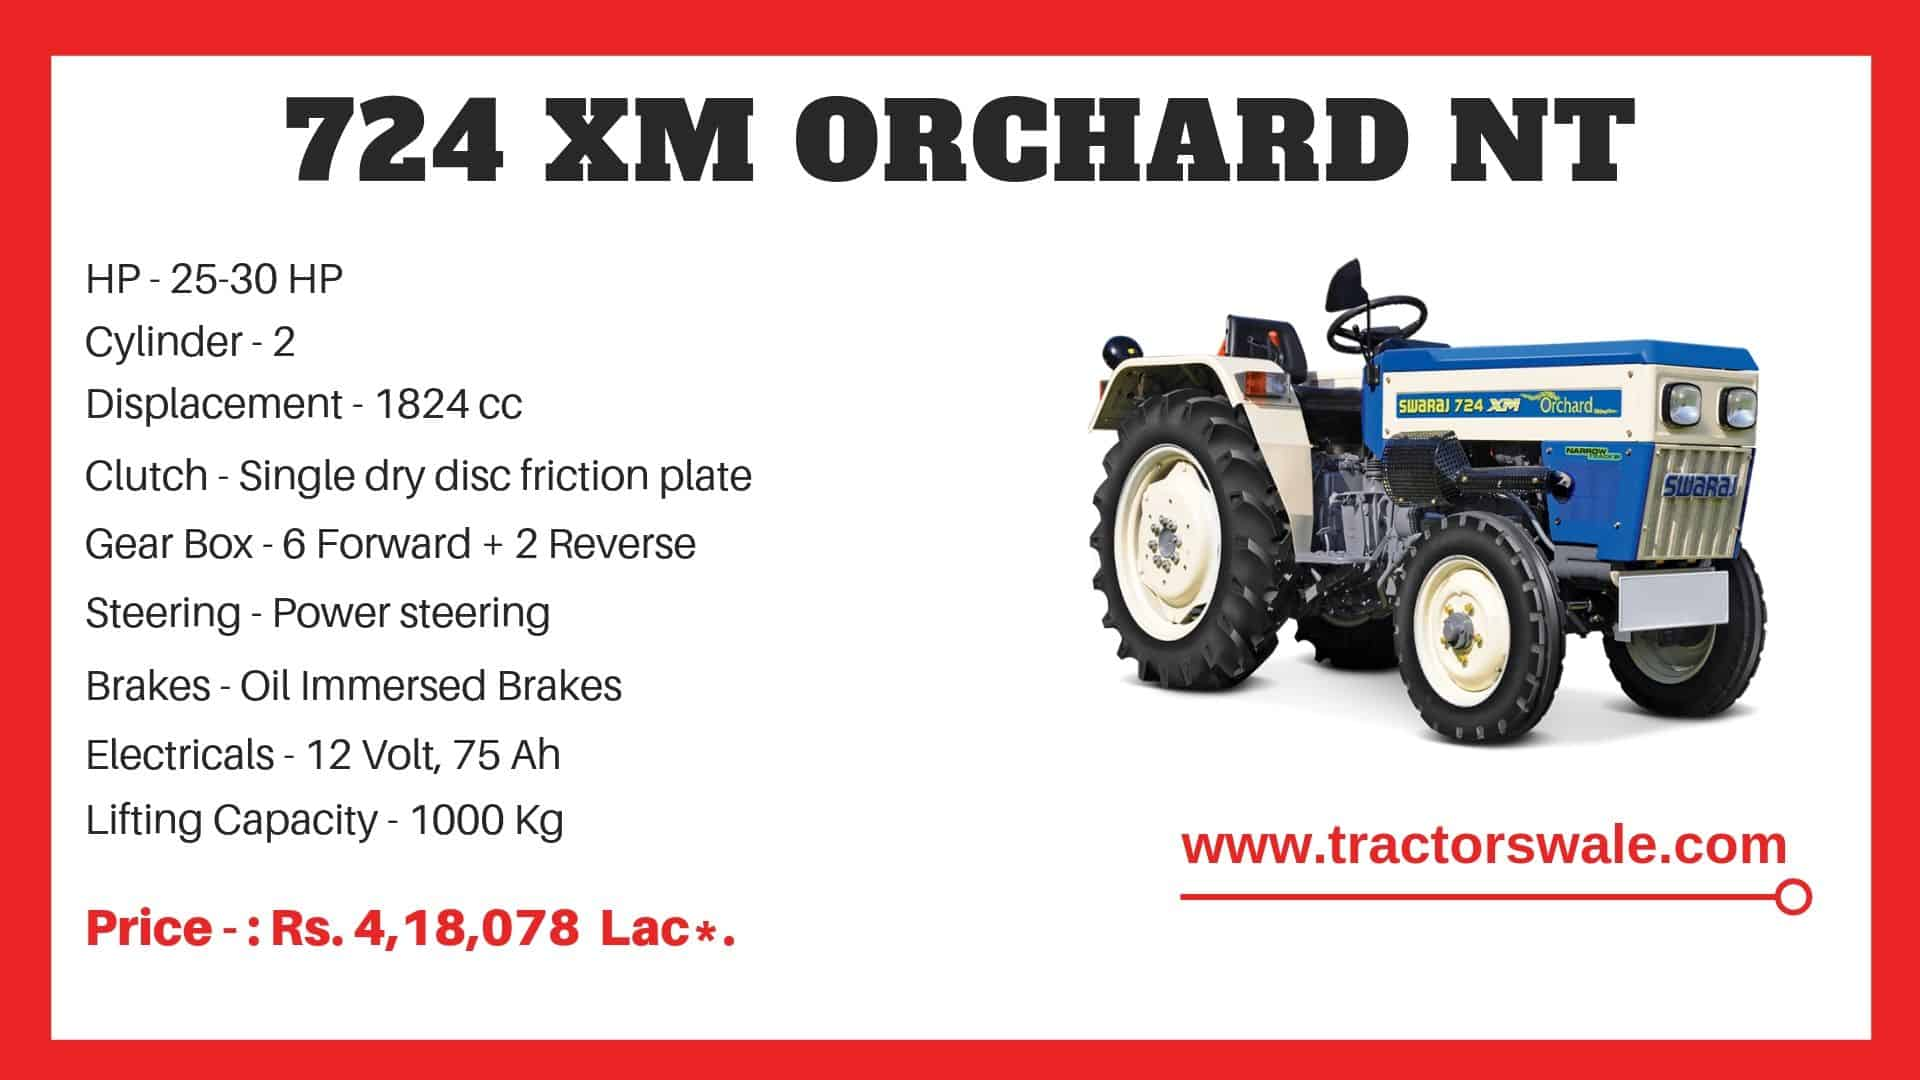 Specification of Swaraj 724 XM Orchard NT Tractor